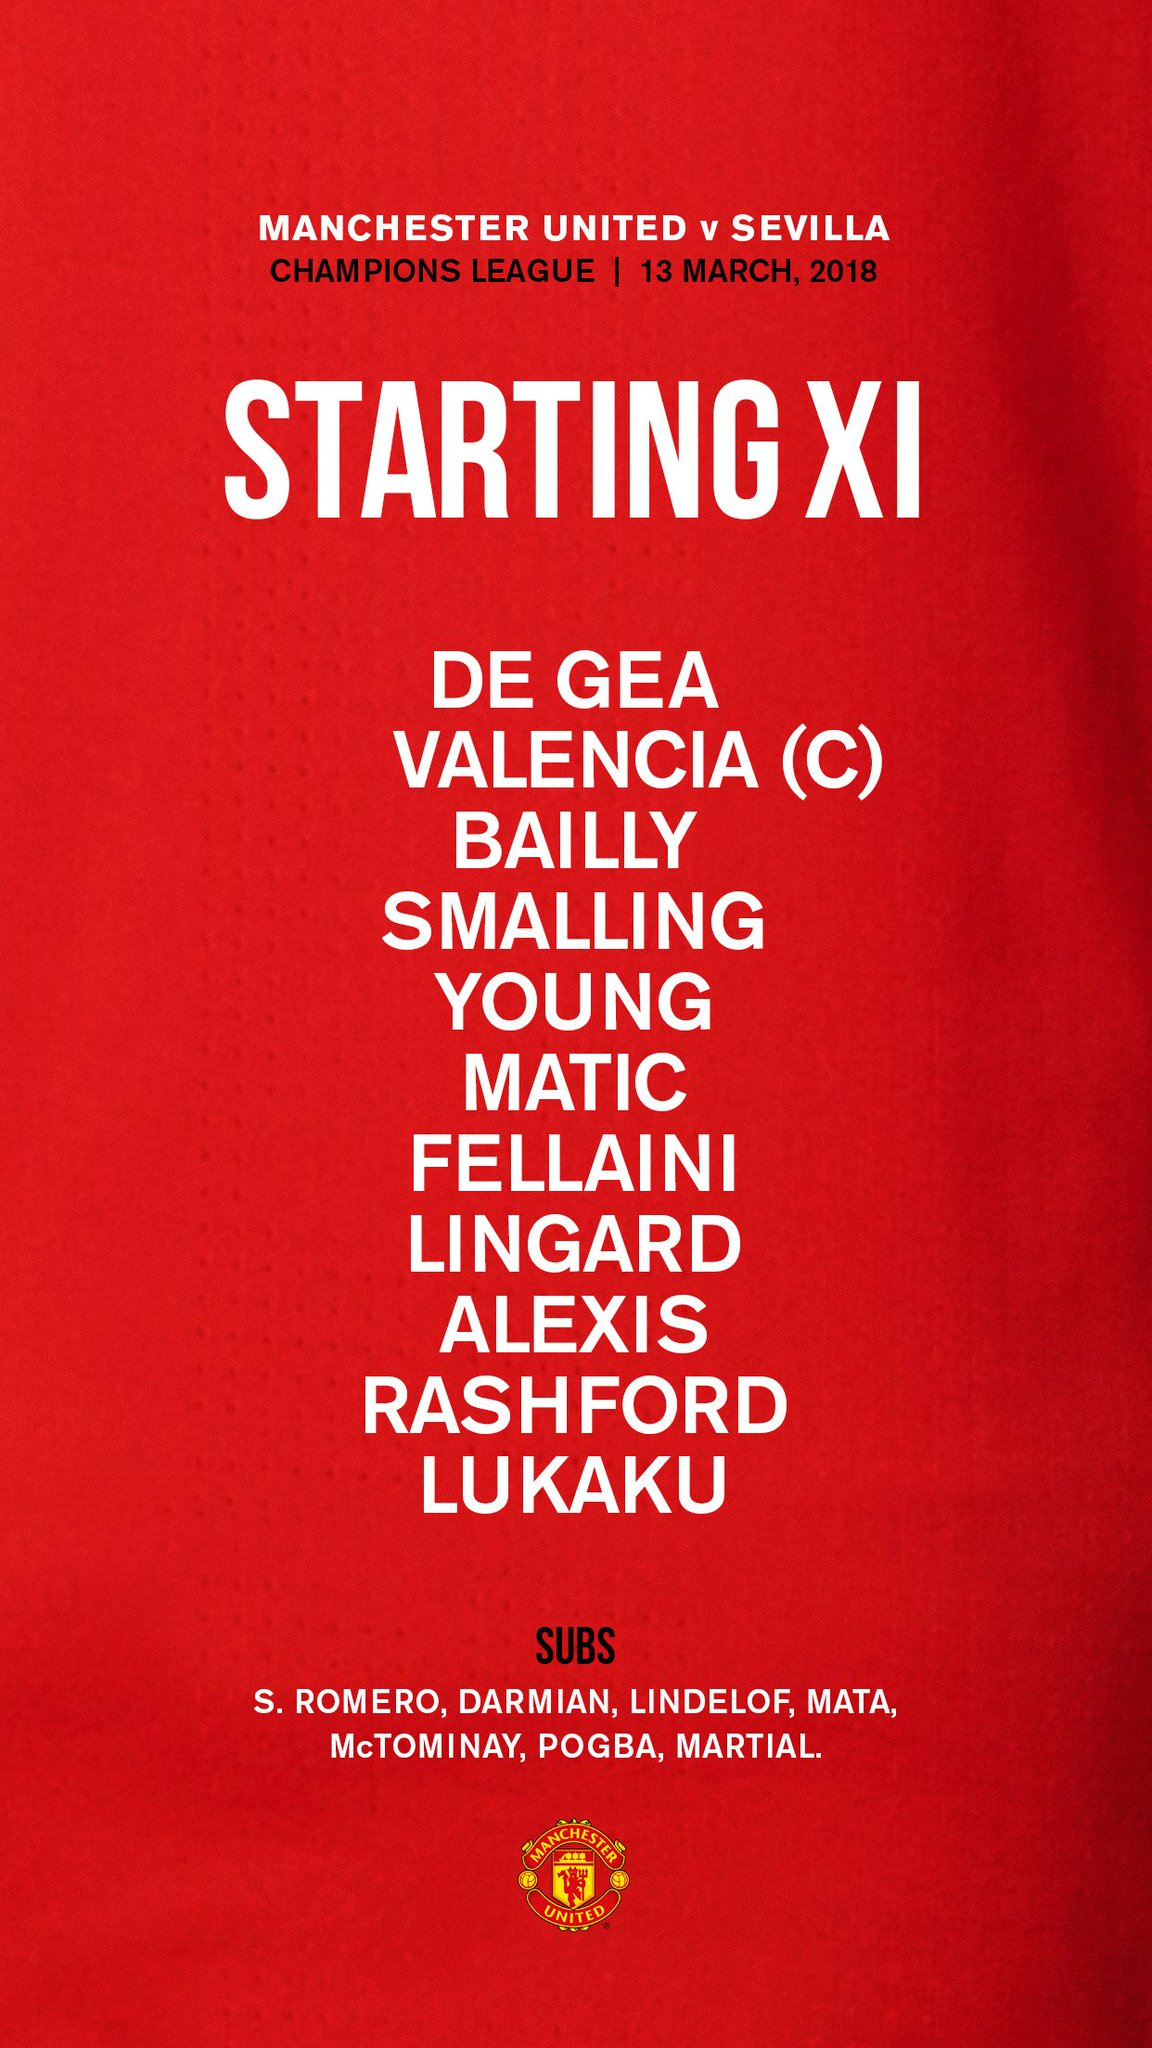 How #MUFC line up for tonight's #UCL clash... https://t.co/a7OsKpvmhD